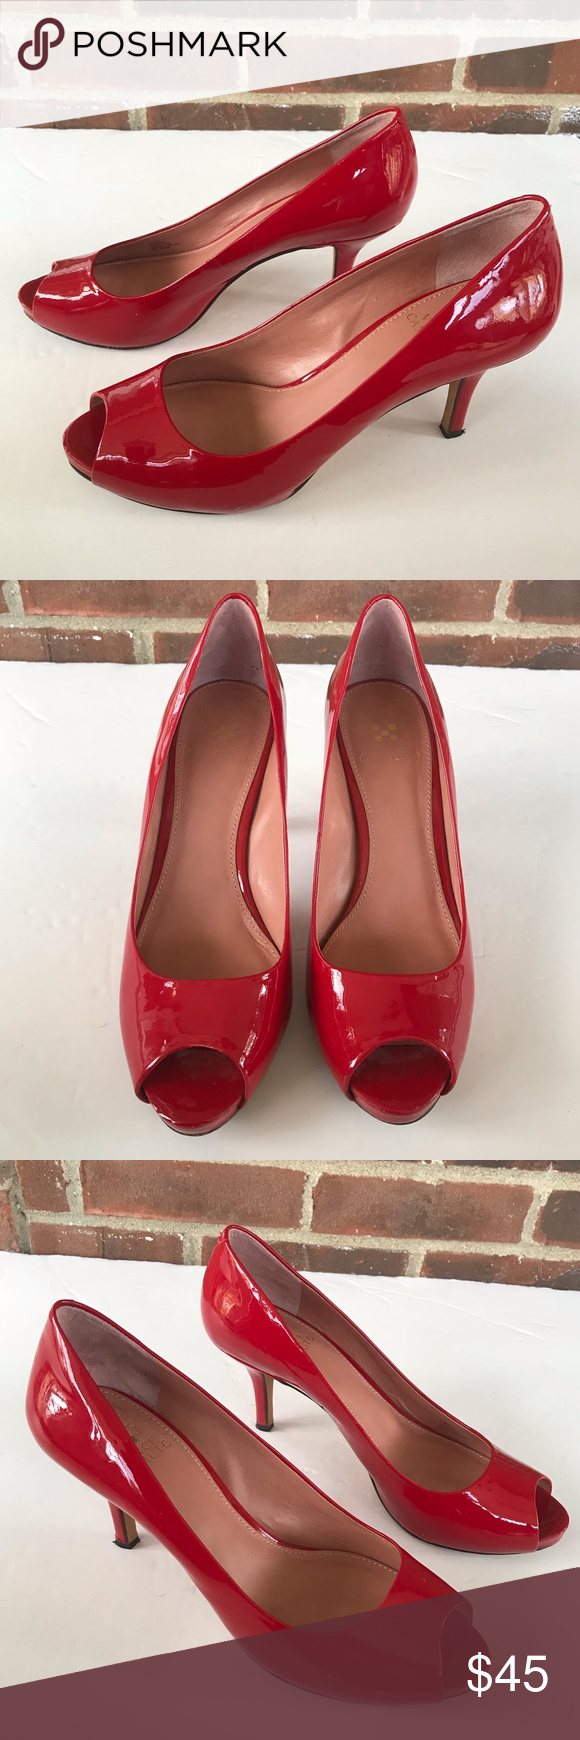 How to peep red wear toe heels forecast to wear in on every day in 2019